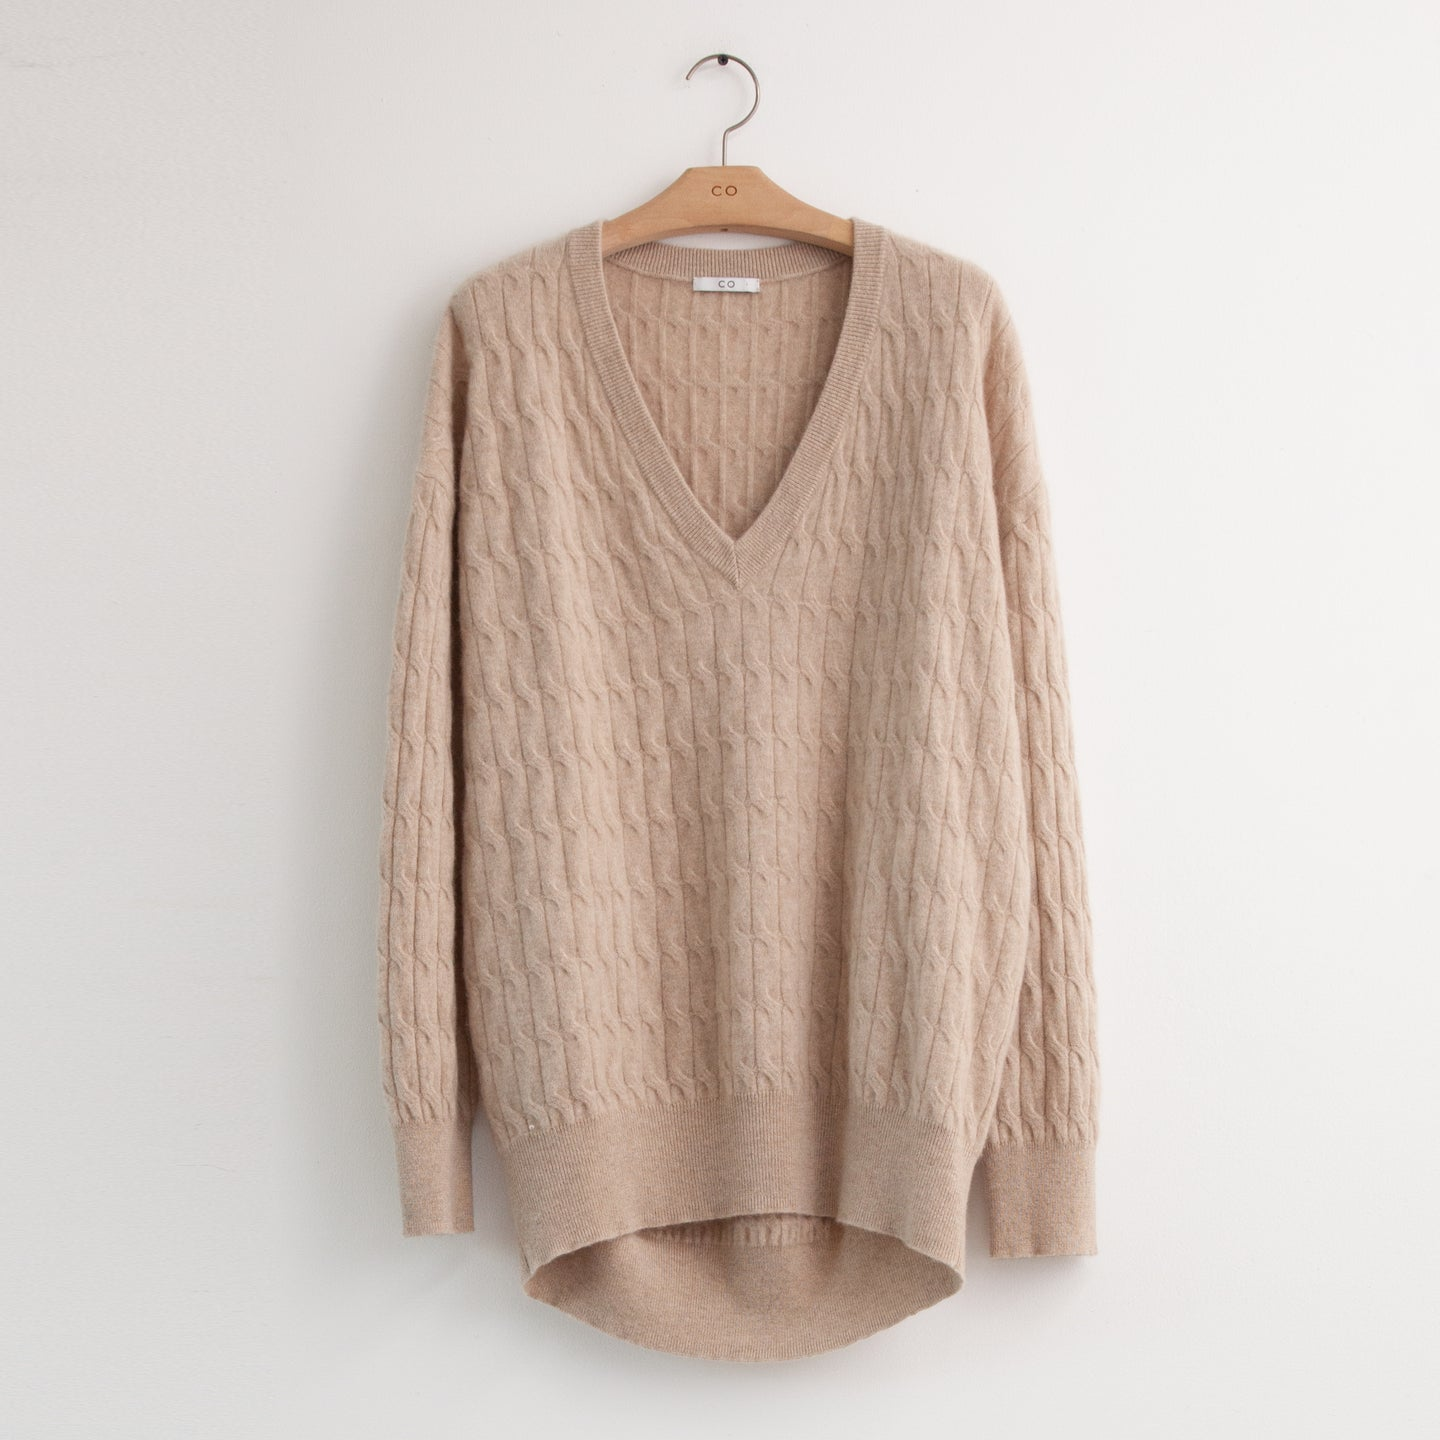 Long sleeve oversized v neck sweater in sand cable knit cashmere - CO